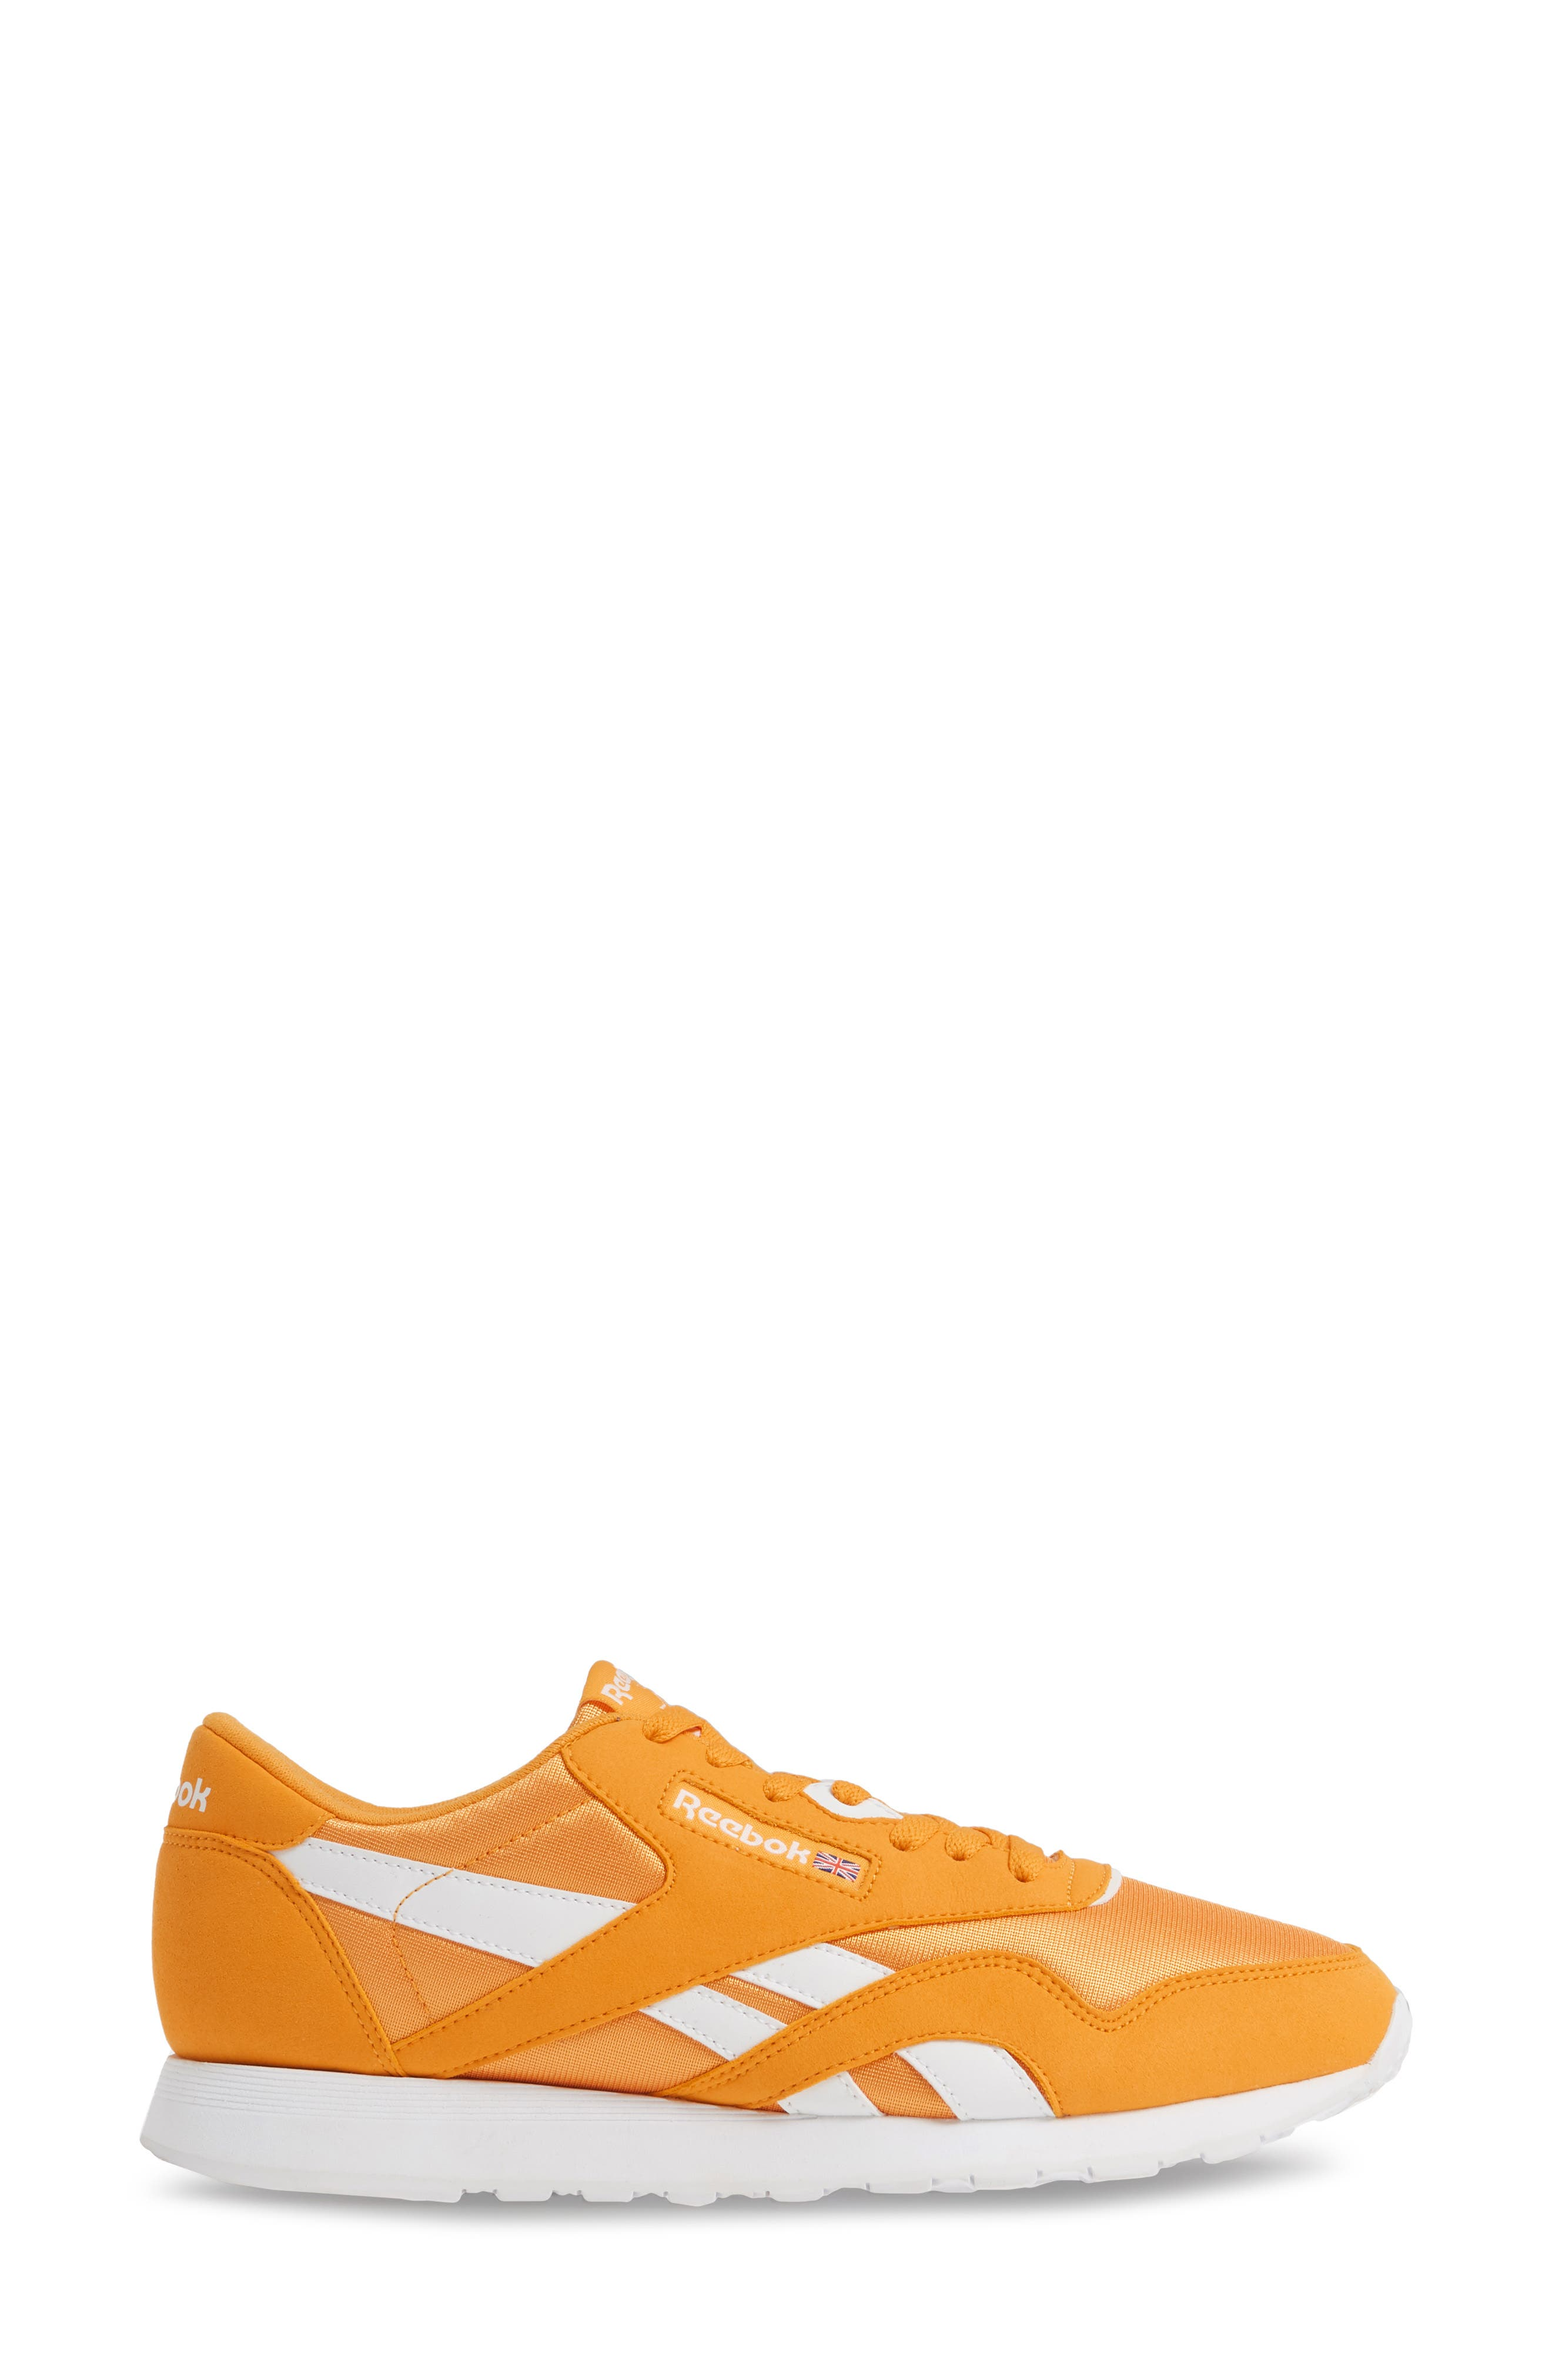 REEBOK, Classic Nylon Sneaker, Alternate thumbnail 3, color, TREK GOLD/ WHITE